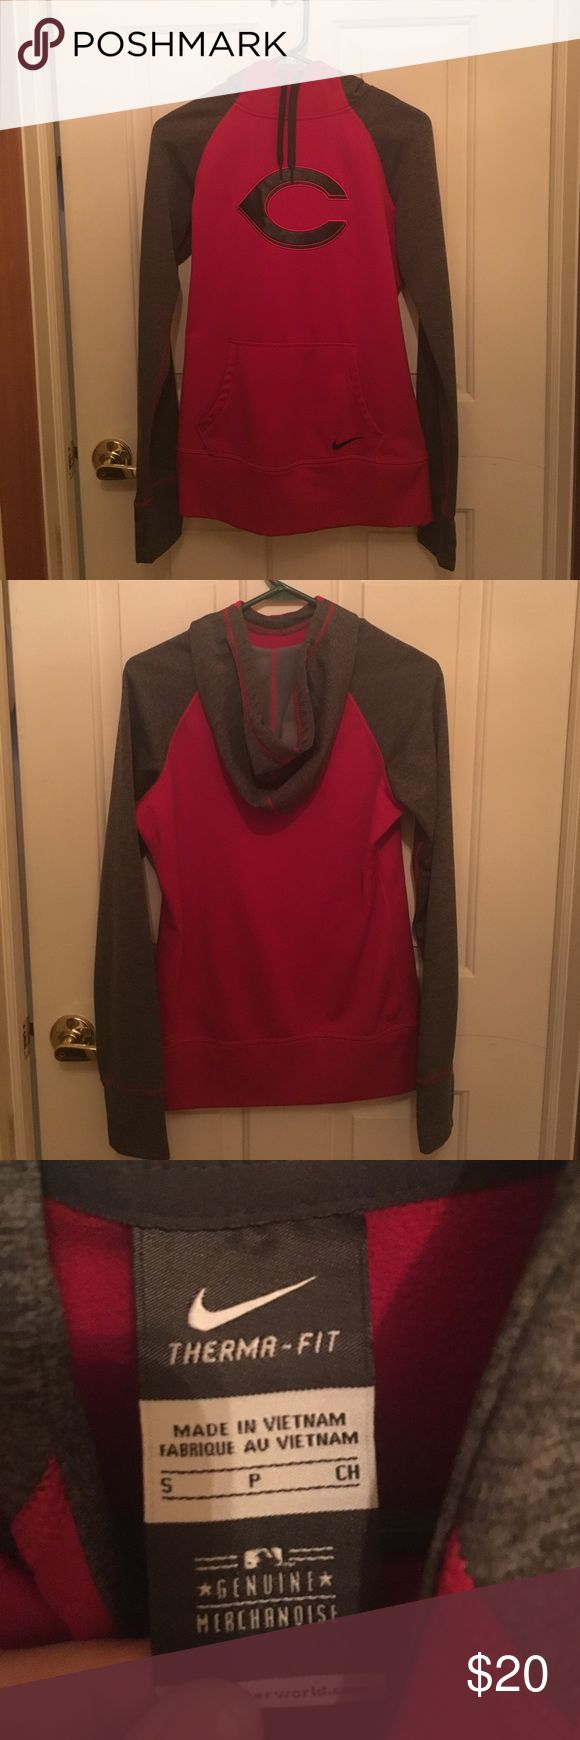 Women's Cincinnati Reds Nike Hoodie, size small Hoodie in excellent condition. I only wore it maybe three times. Unfortunately, it is too small for me now. Nike Tops Sweatshirts & Hoodies